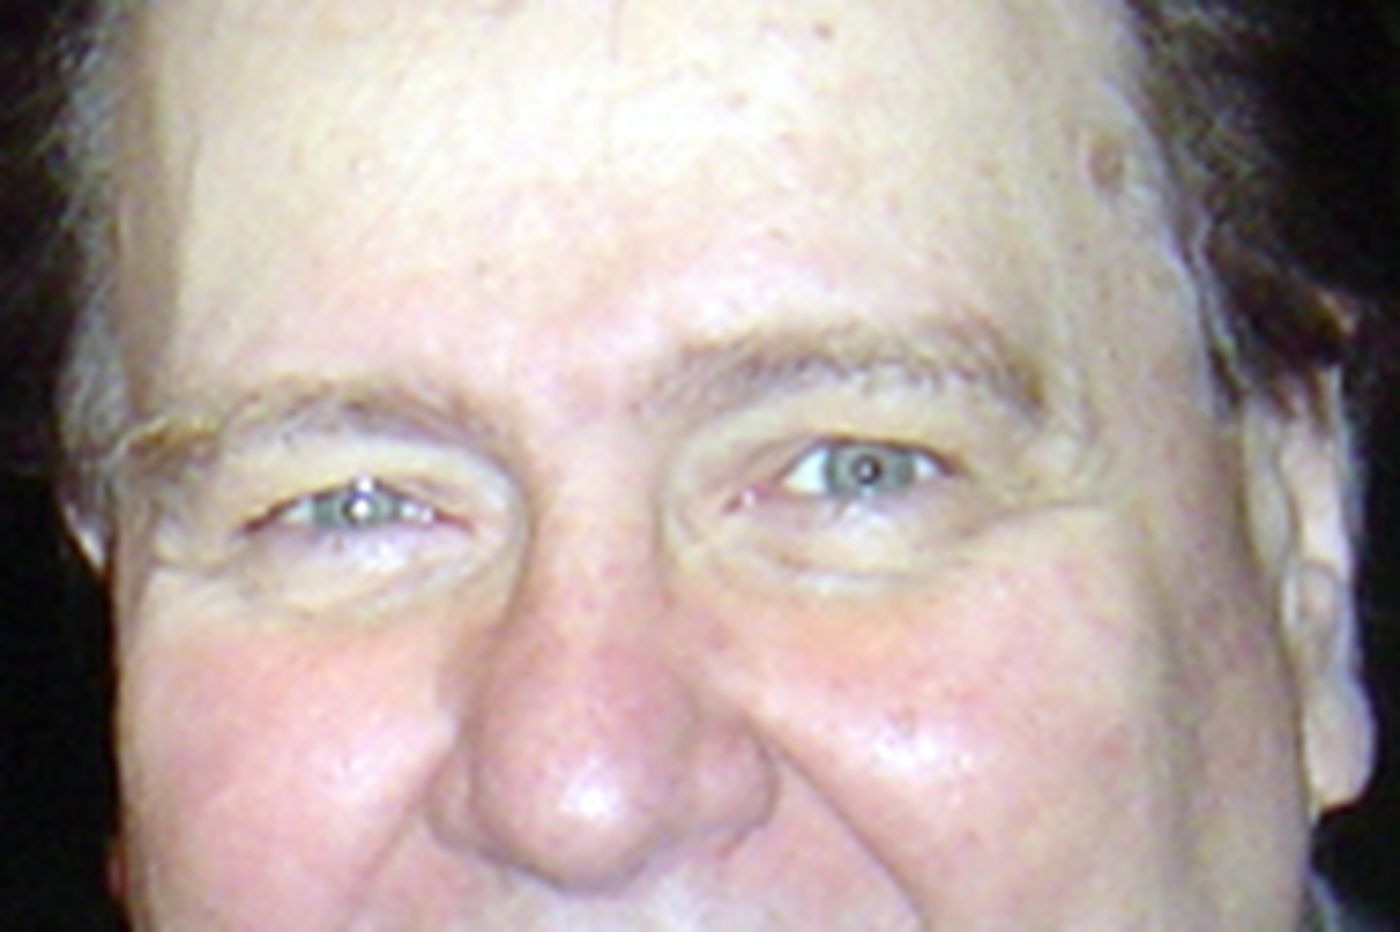 William Zaccagni, 57, musician, teacher